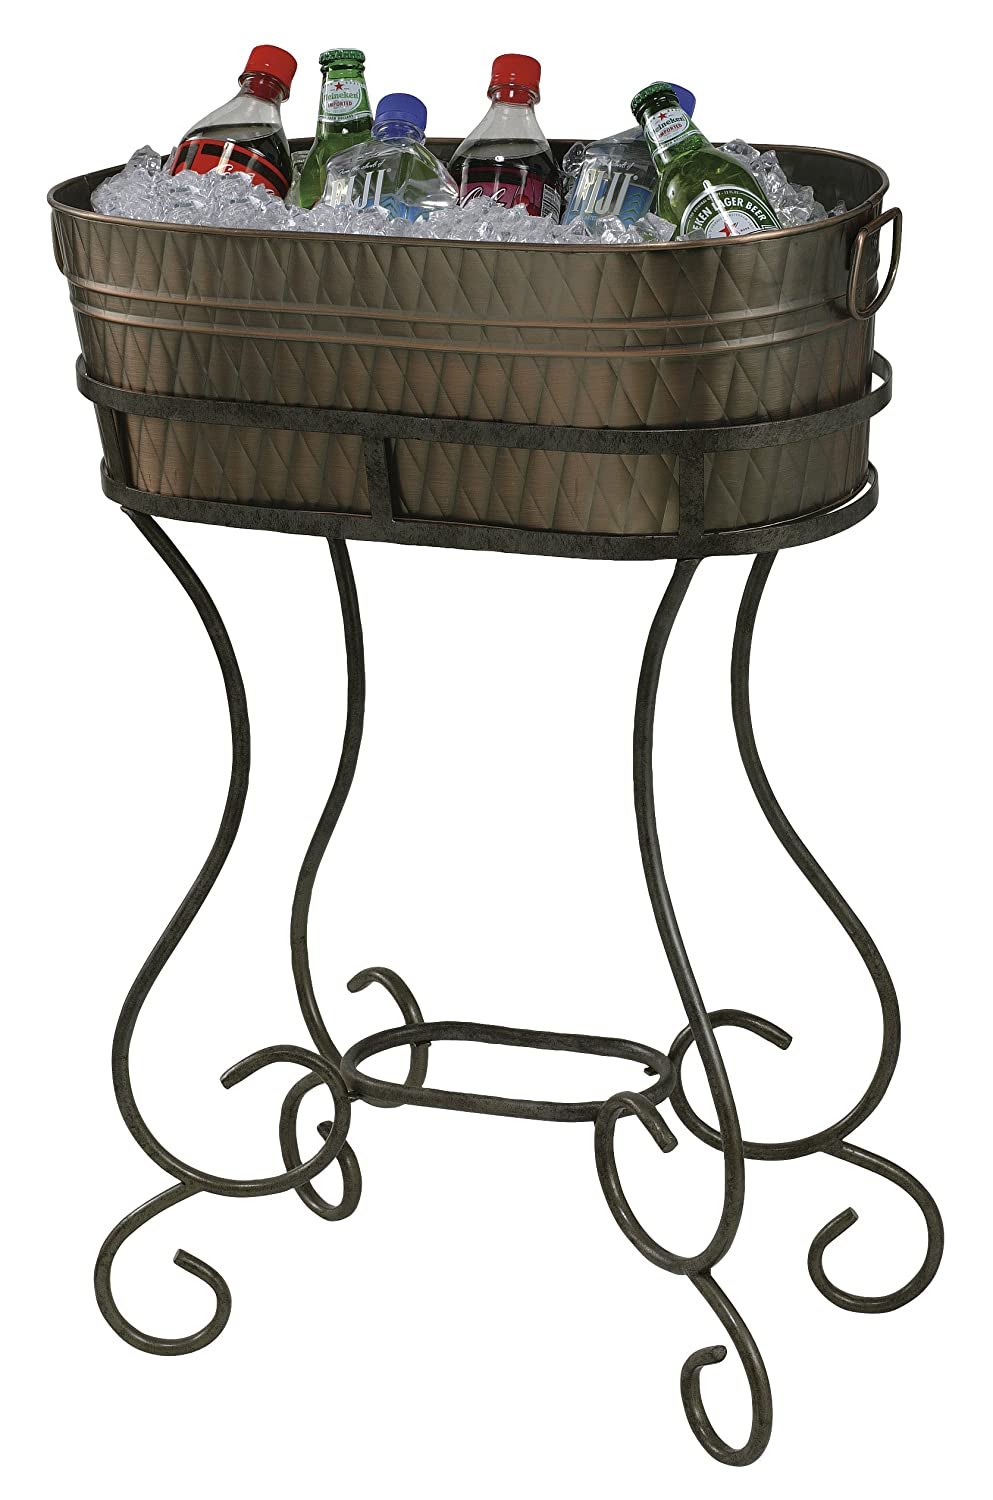 Amazoncom Howard Miller 655145 Entertainment Beverage Tub by